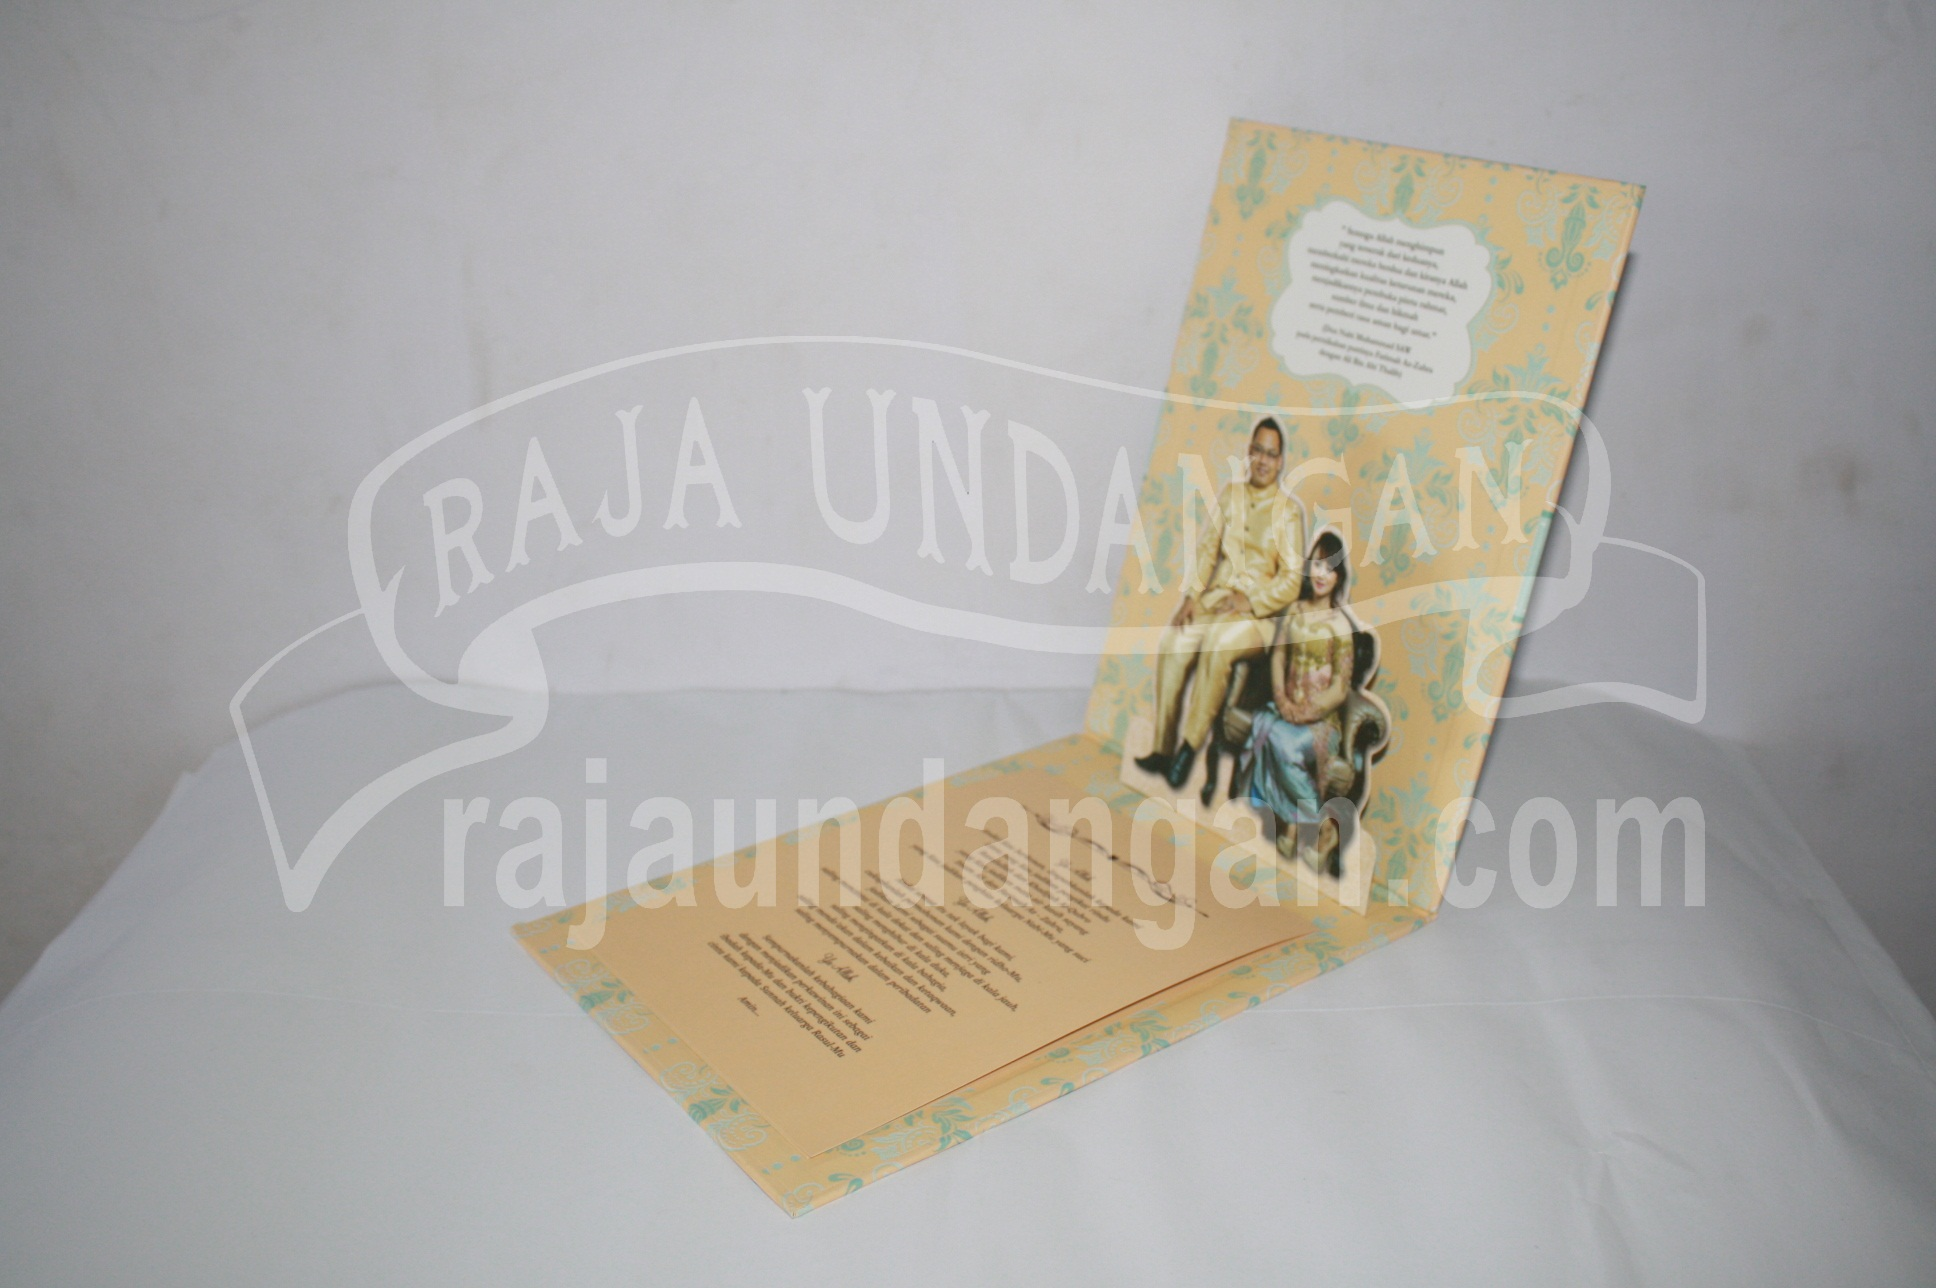 Undangan Pernikahan Hardcover Pop Up Pakai Amplop Yudha dan Devina EDC 47 3 - Pesan Wedding Invitations Simple di Jambangan Karah